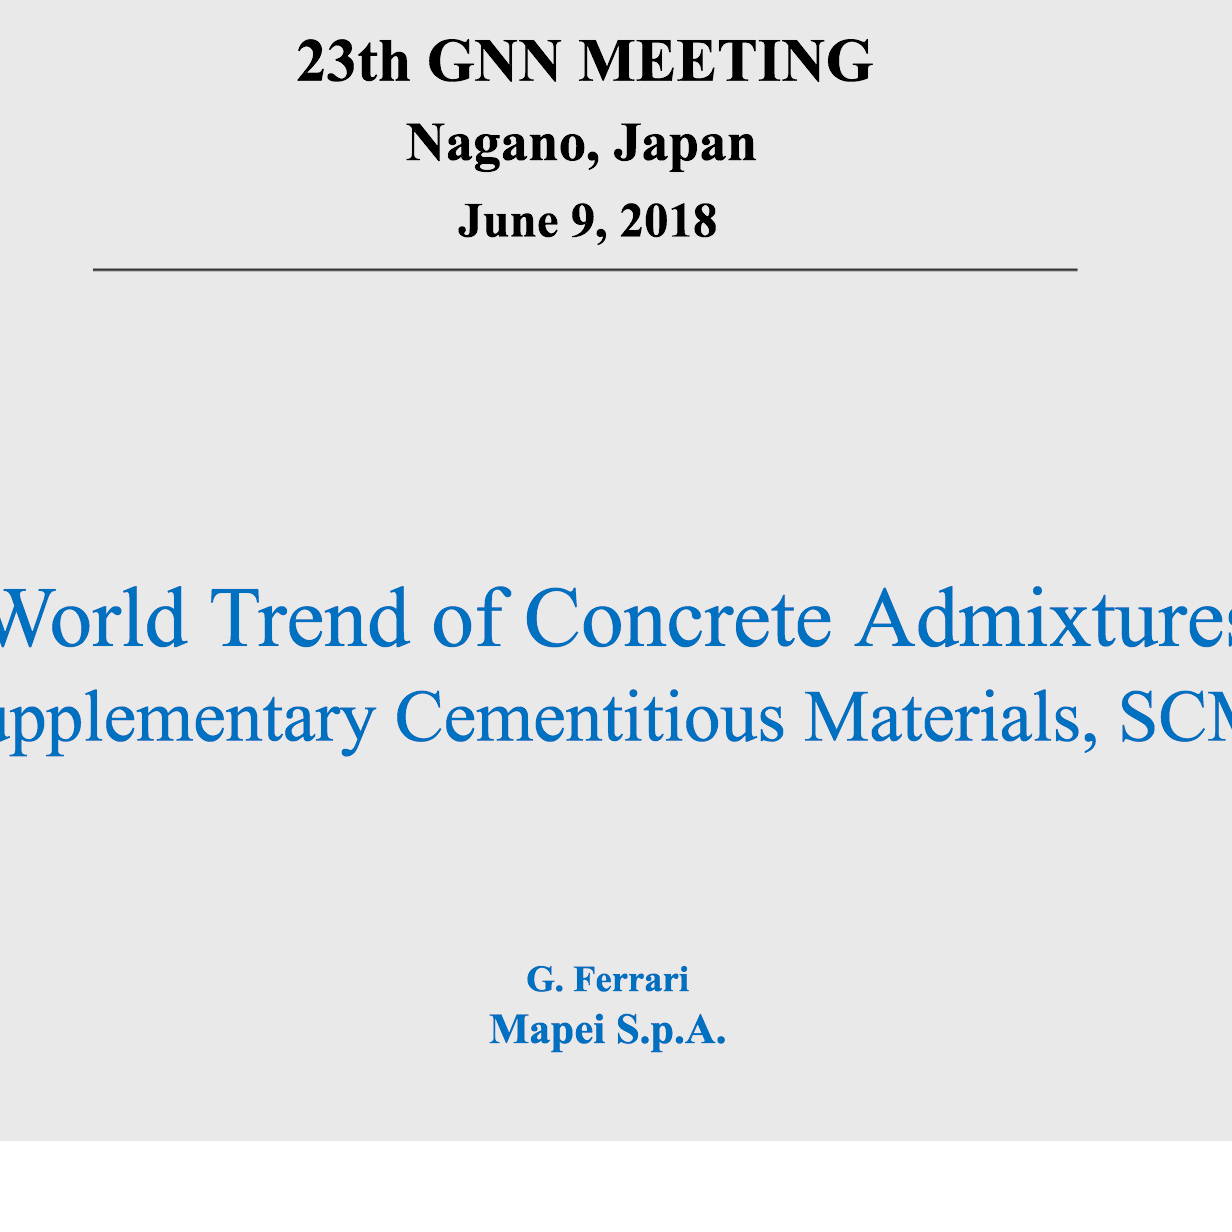 「World Trend of Concrete Admixtures|GNN長野」